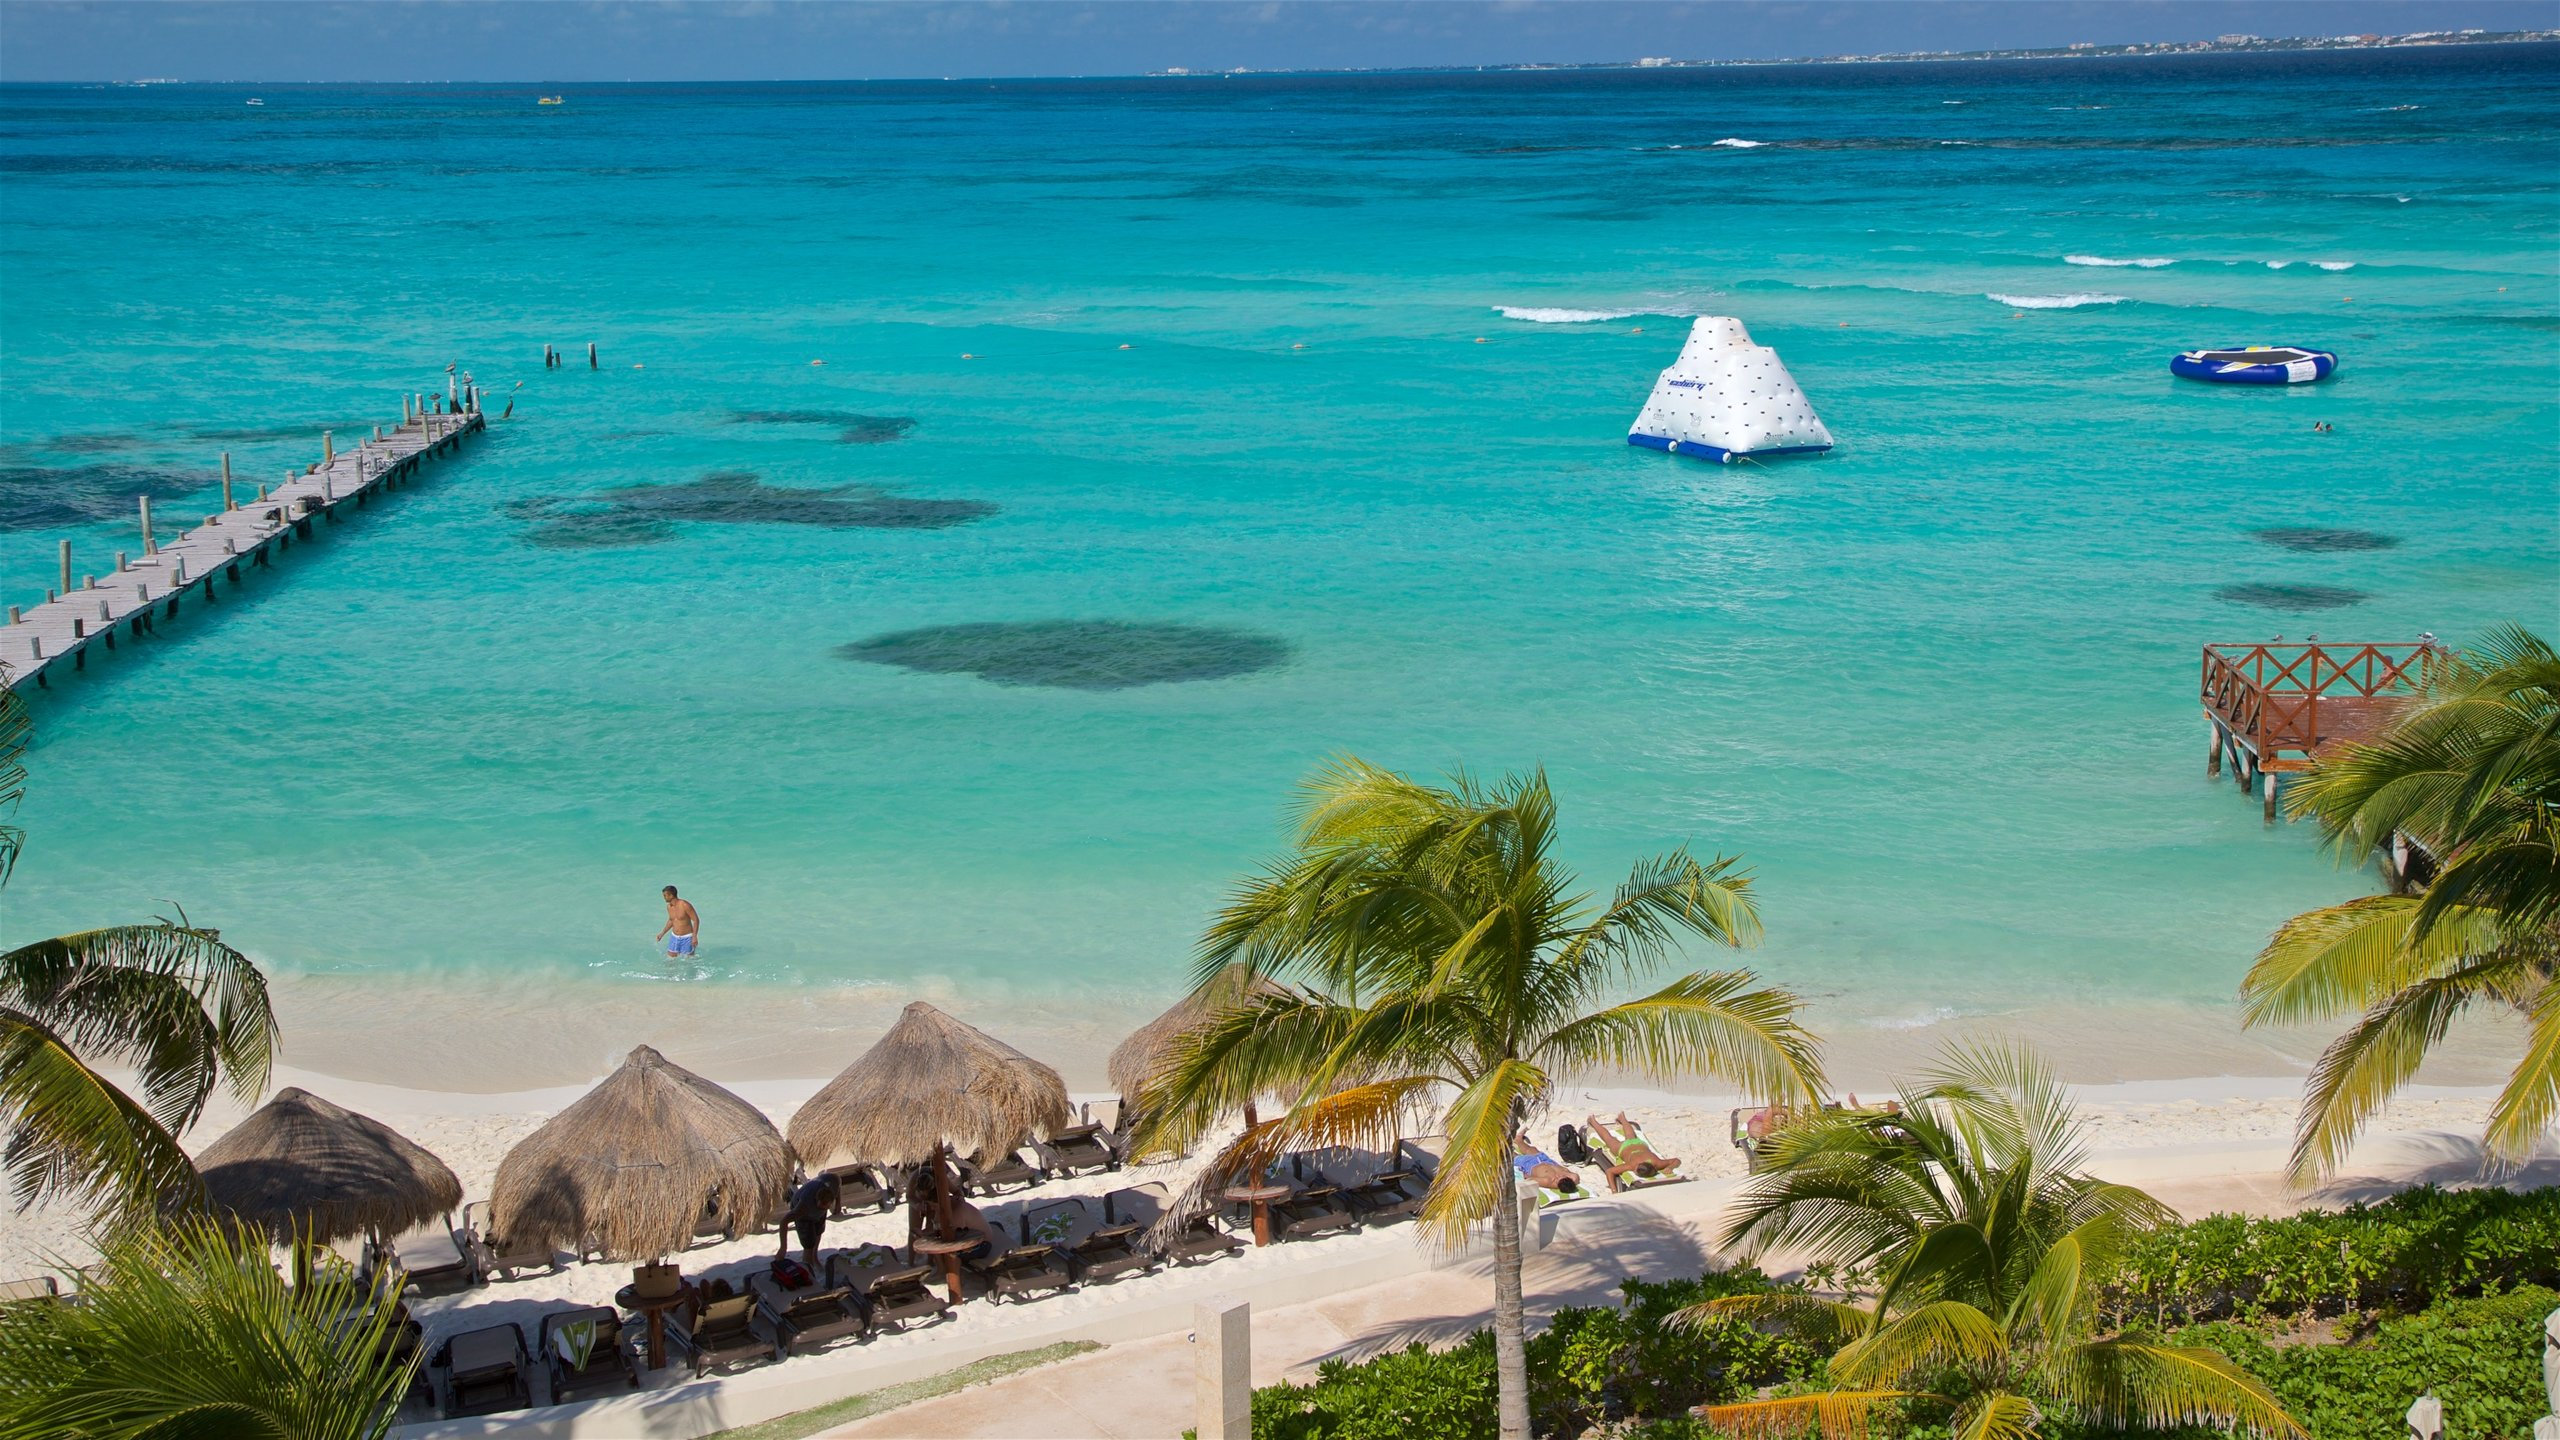 Top 10 Cheap All Inclusive Hotels Accommodation in Cancun